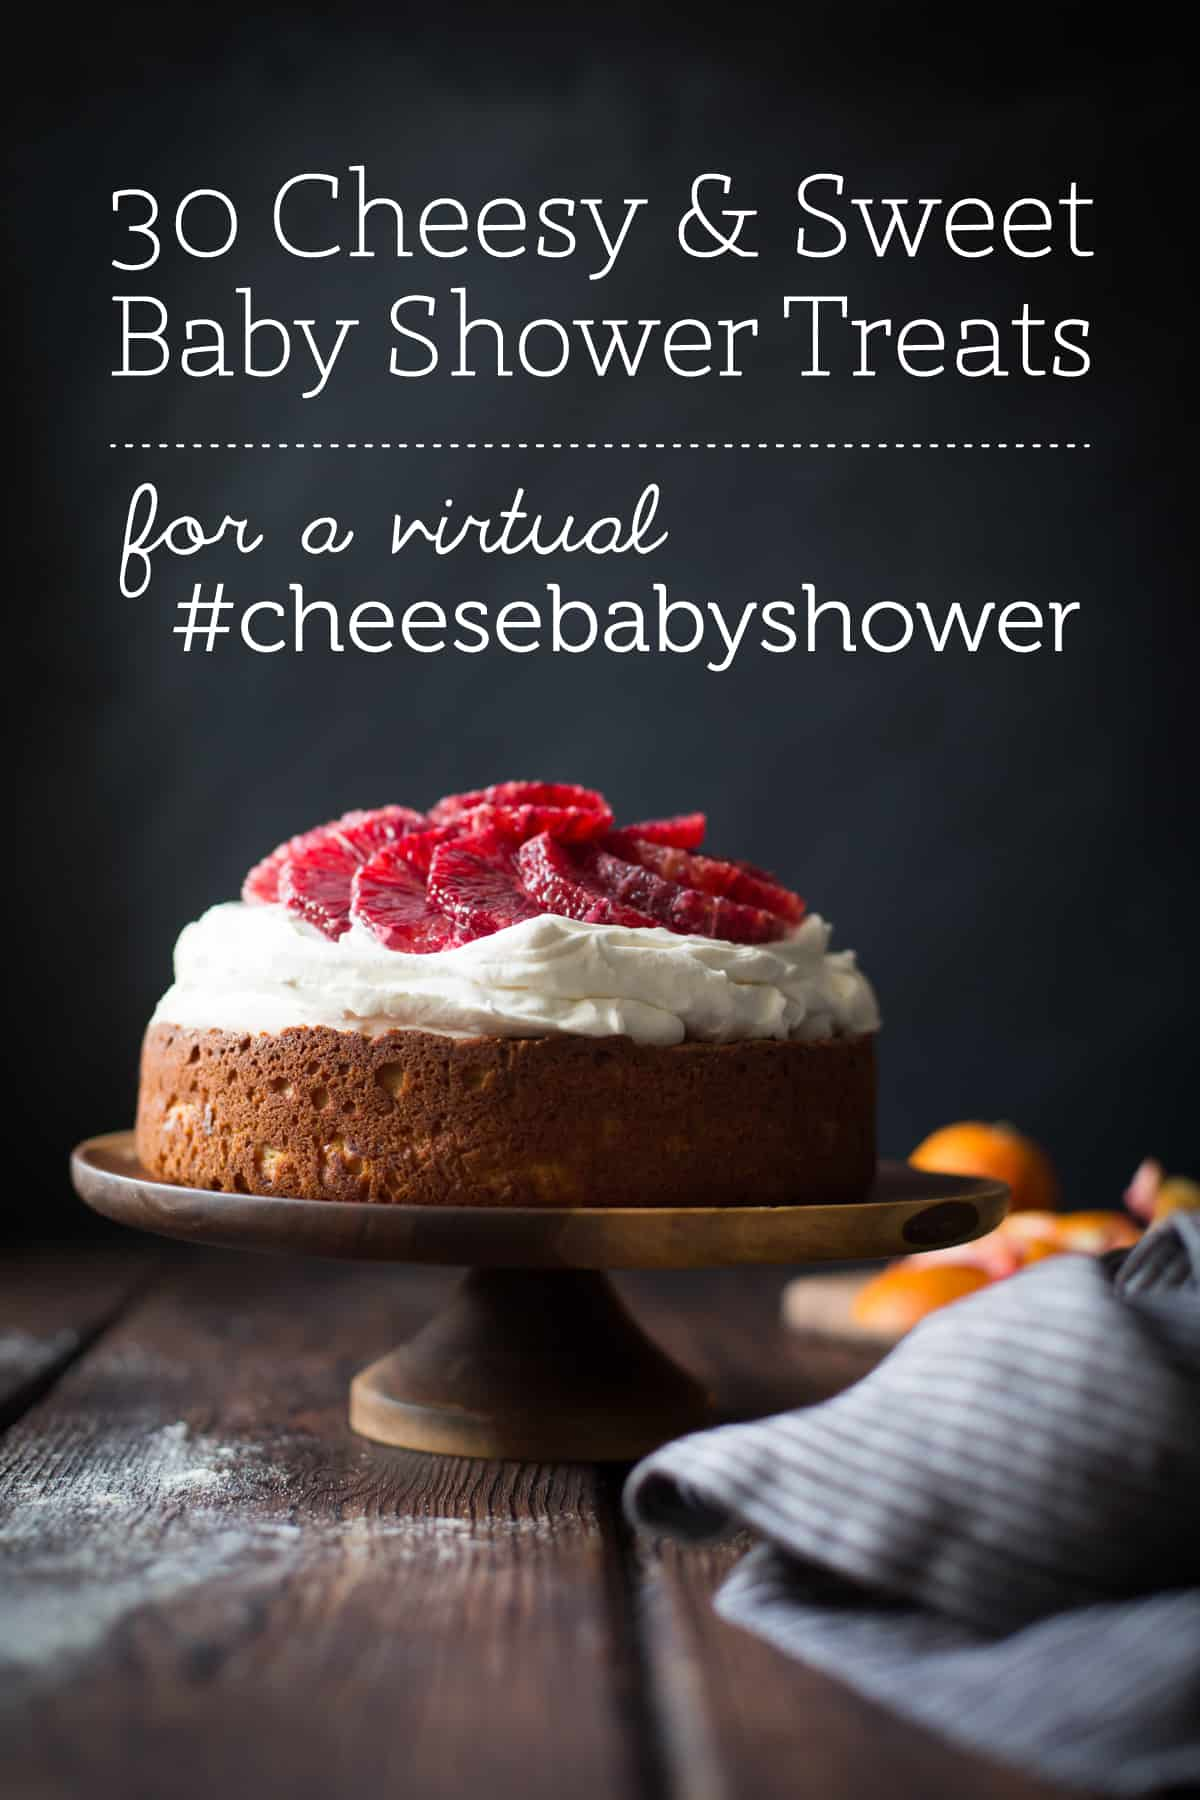 Sweets from Baby: a recipe with a photo